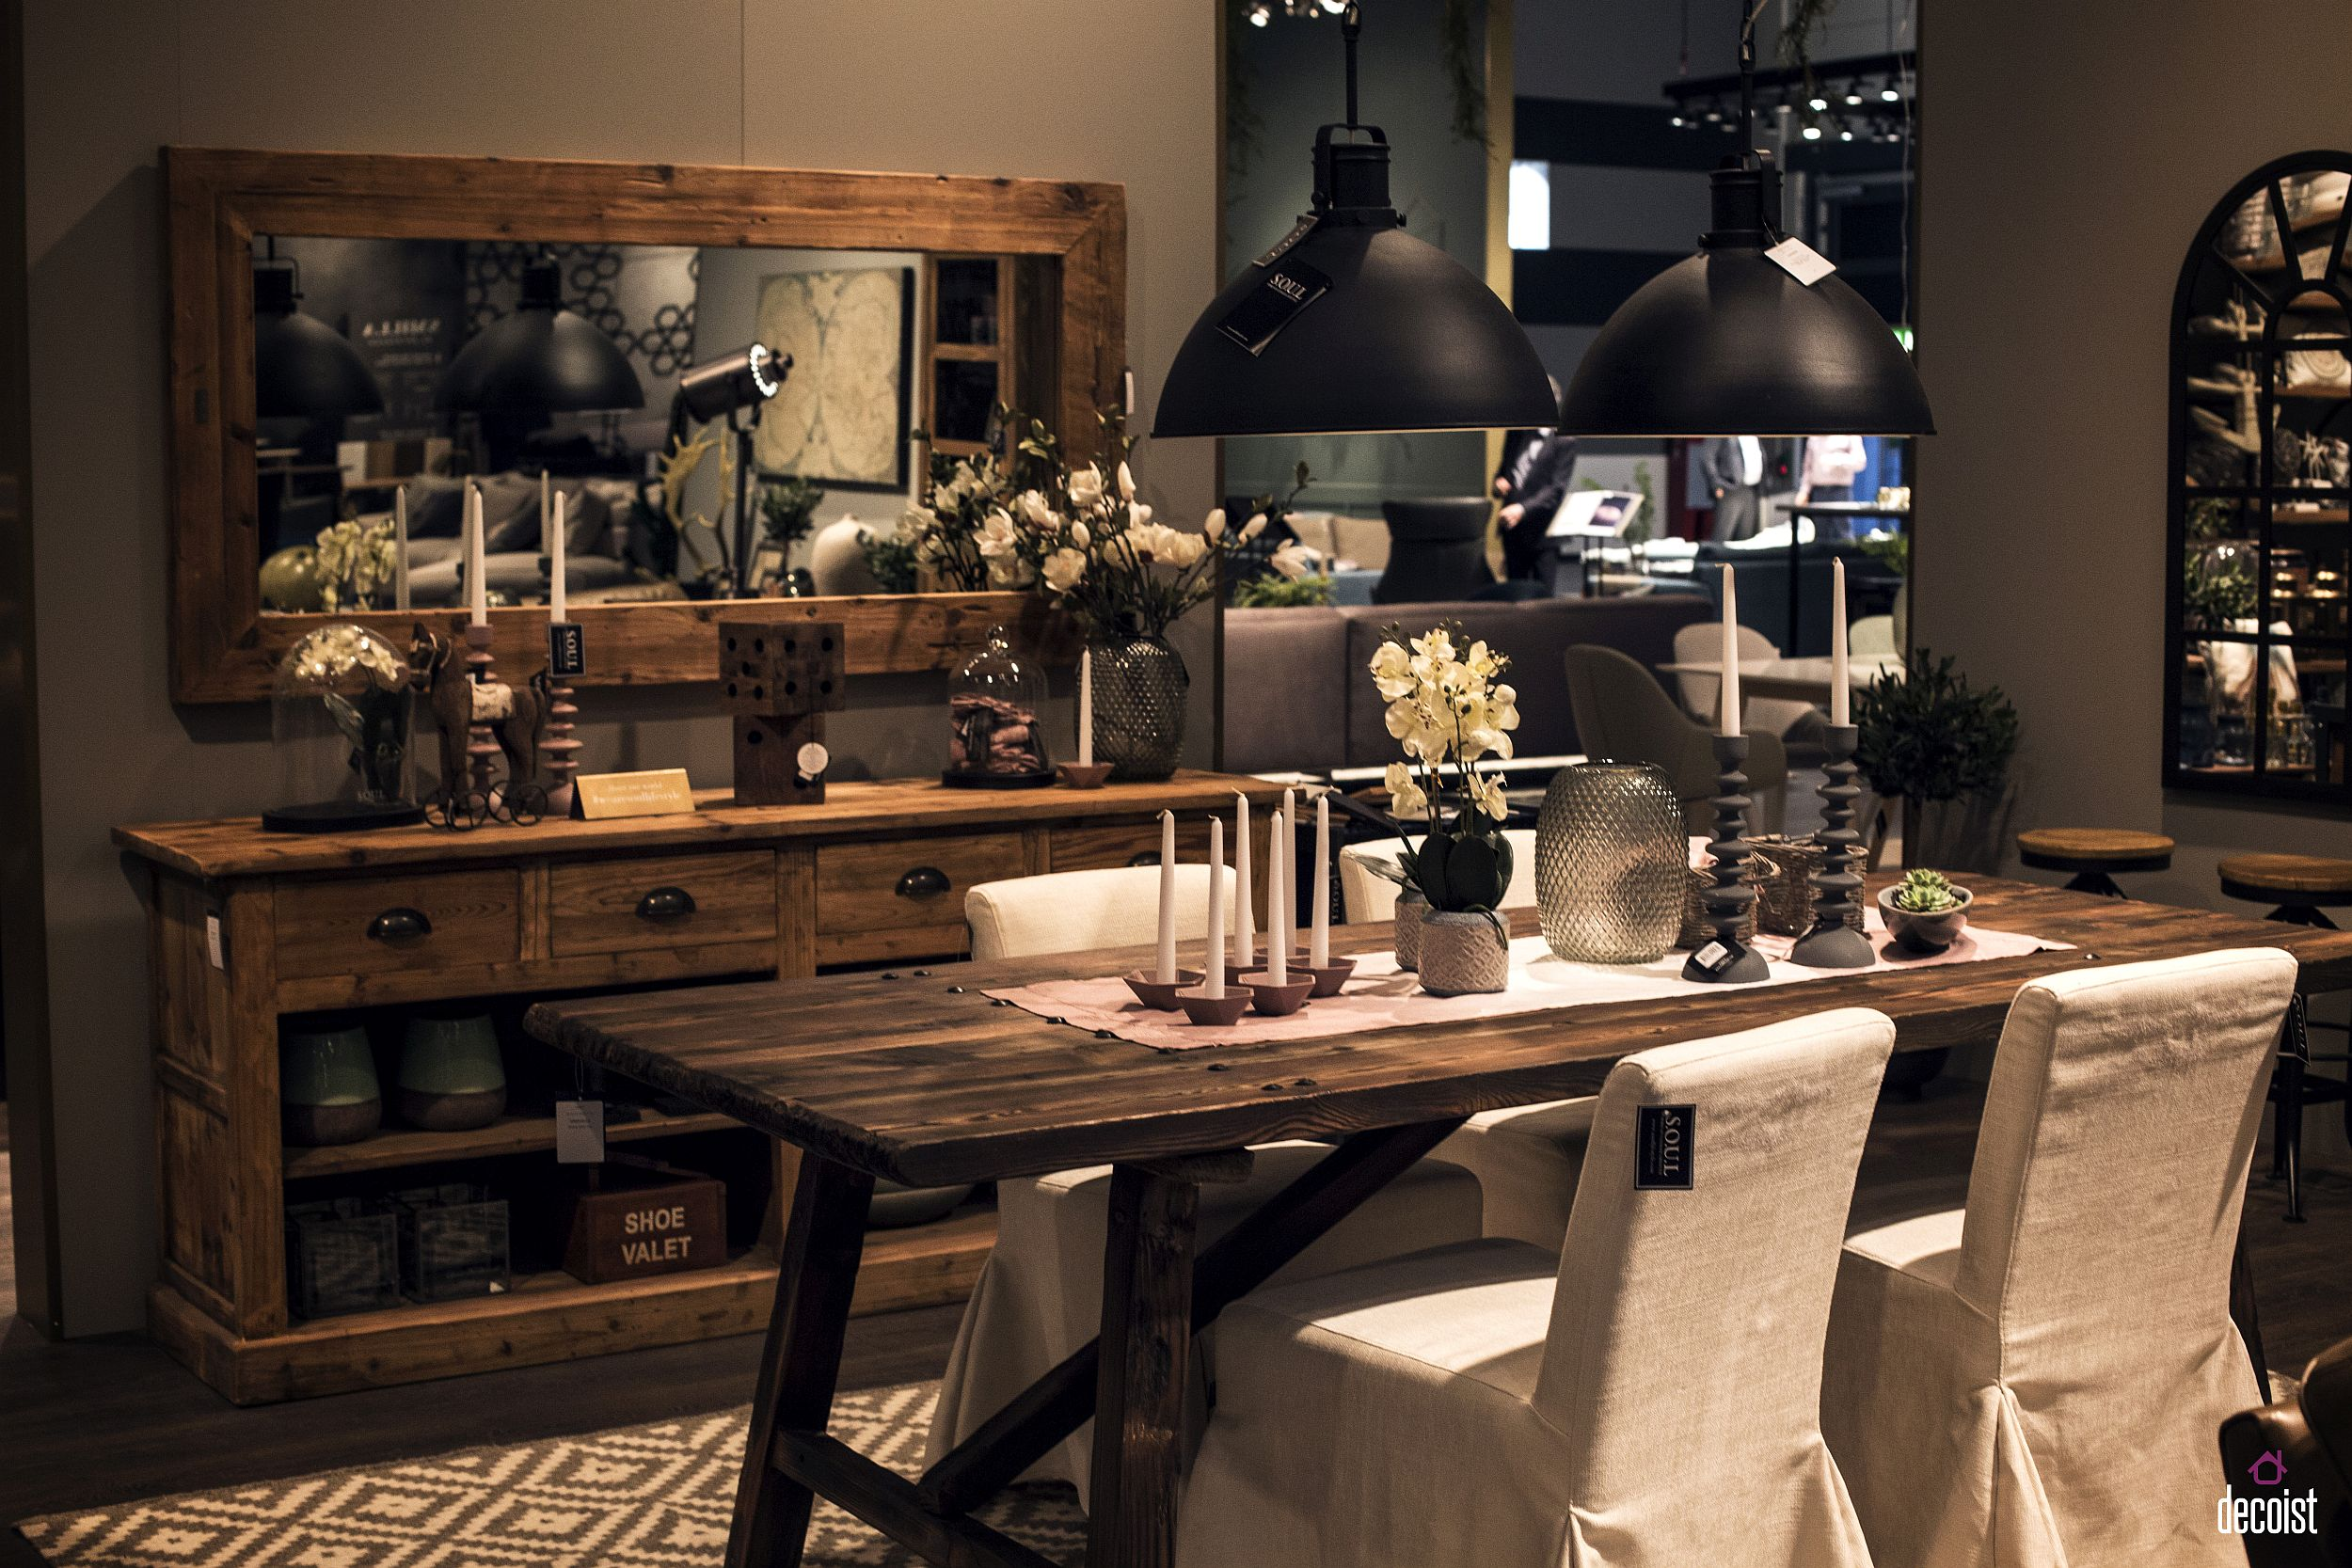 Mirrors-add-a-cool-glint-to-the-modern-dining-room